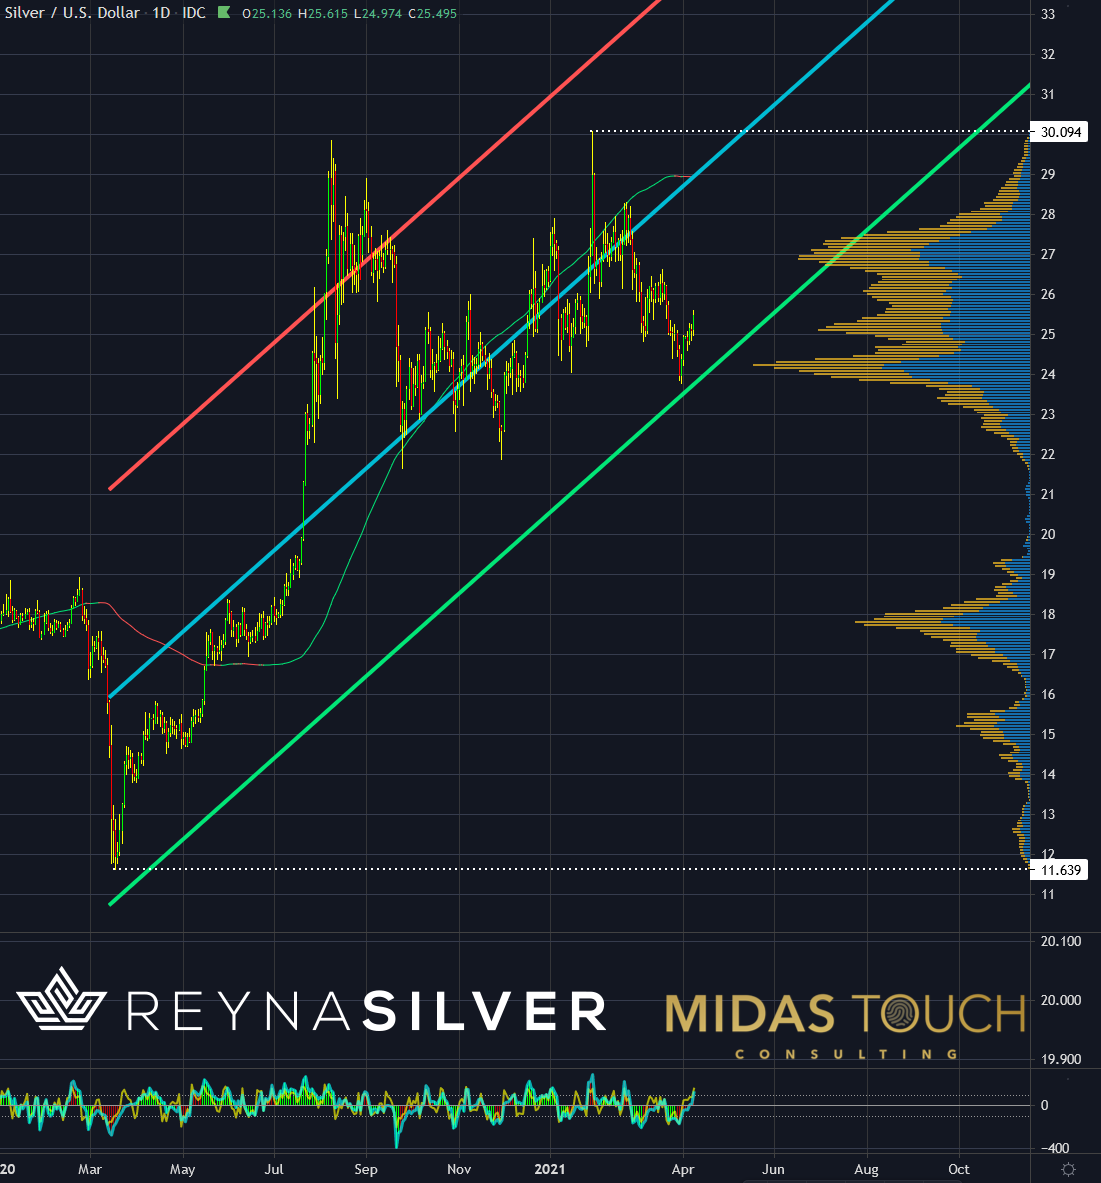 Silver in US-Dollar, daily chart as of April 8th, 2021.